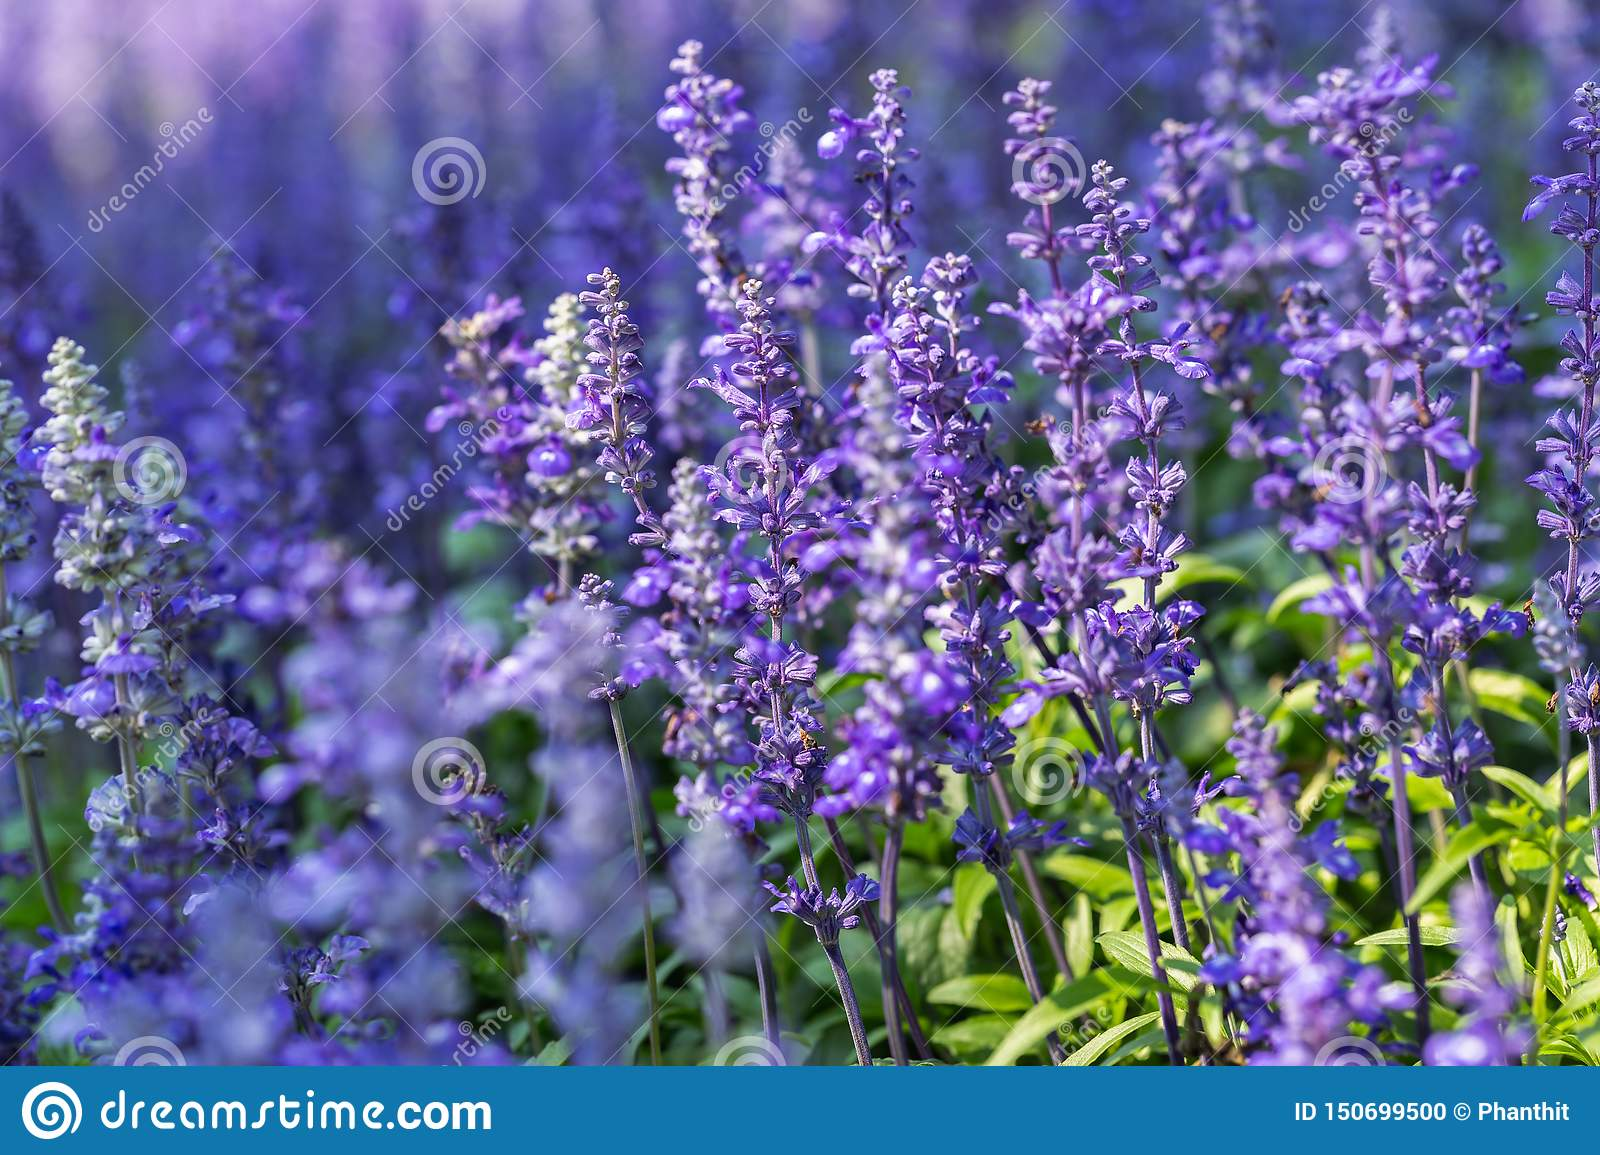 Blue Salvia flower and green leaf in garden at sunny summer or spring day for postcard beauty decoration.